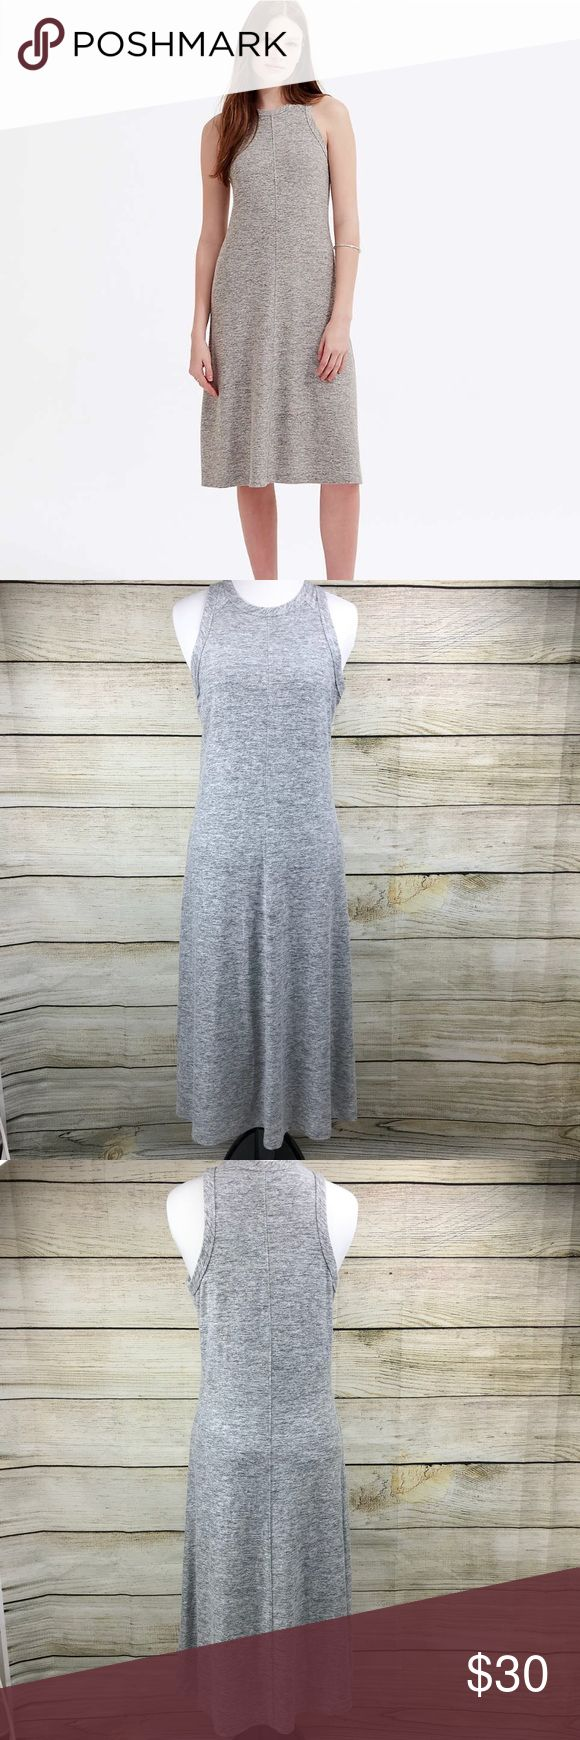 Lou & Grey Slinky Racerback Midi Dress In like new condition. Size small. Heathered gray. Lou and Grey. Midi dress. Racerback. Round neck. Sleeveless. Slinky Racerback. Super comfy fabric. 44 inches long. Lou & Grey Dresses Midi